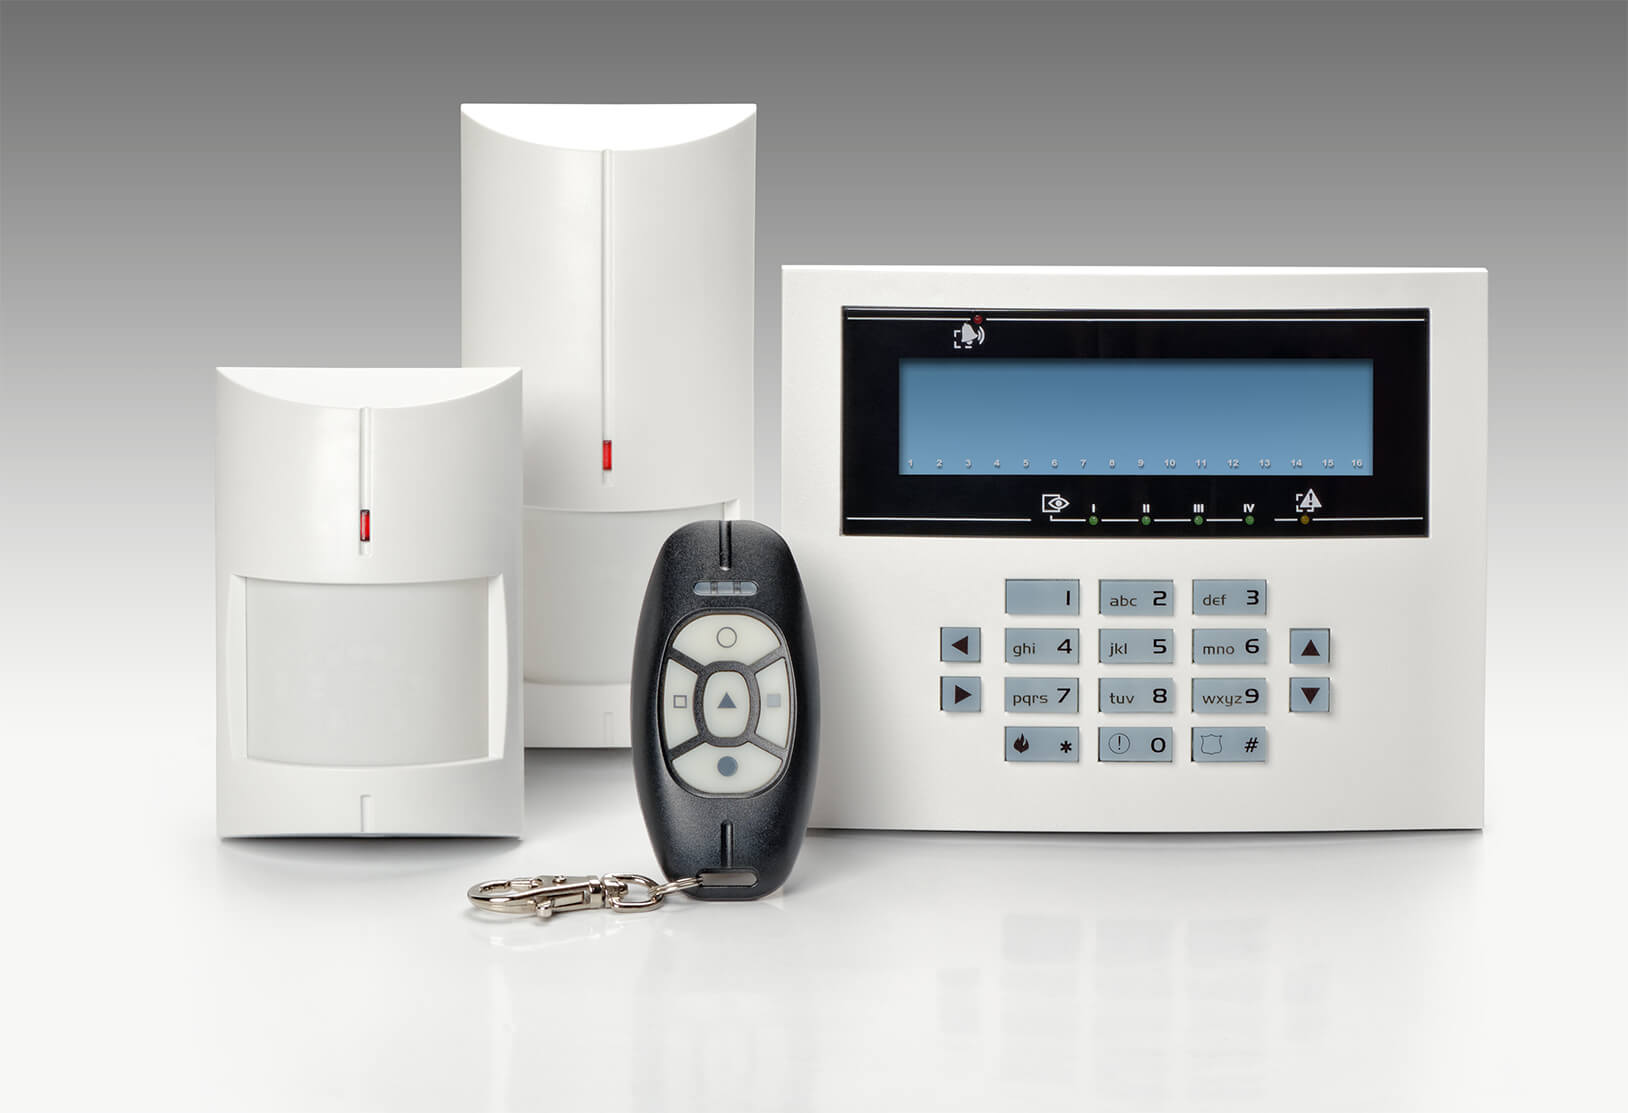 Business & Residential NACOSS Approved Burglar Alarms In Hammersmith W10 - Local Hammersmith W10 security company.Call 02078872244 - Dedicated to Safety & Security. Companies, shops and homes ..